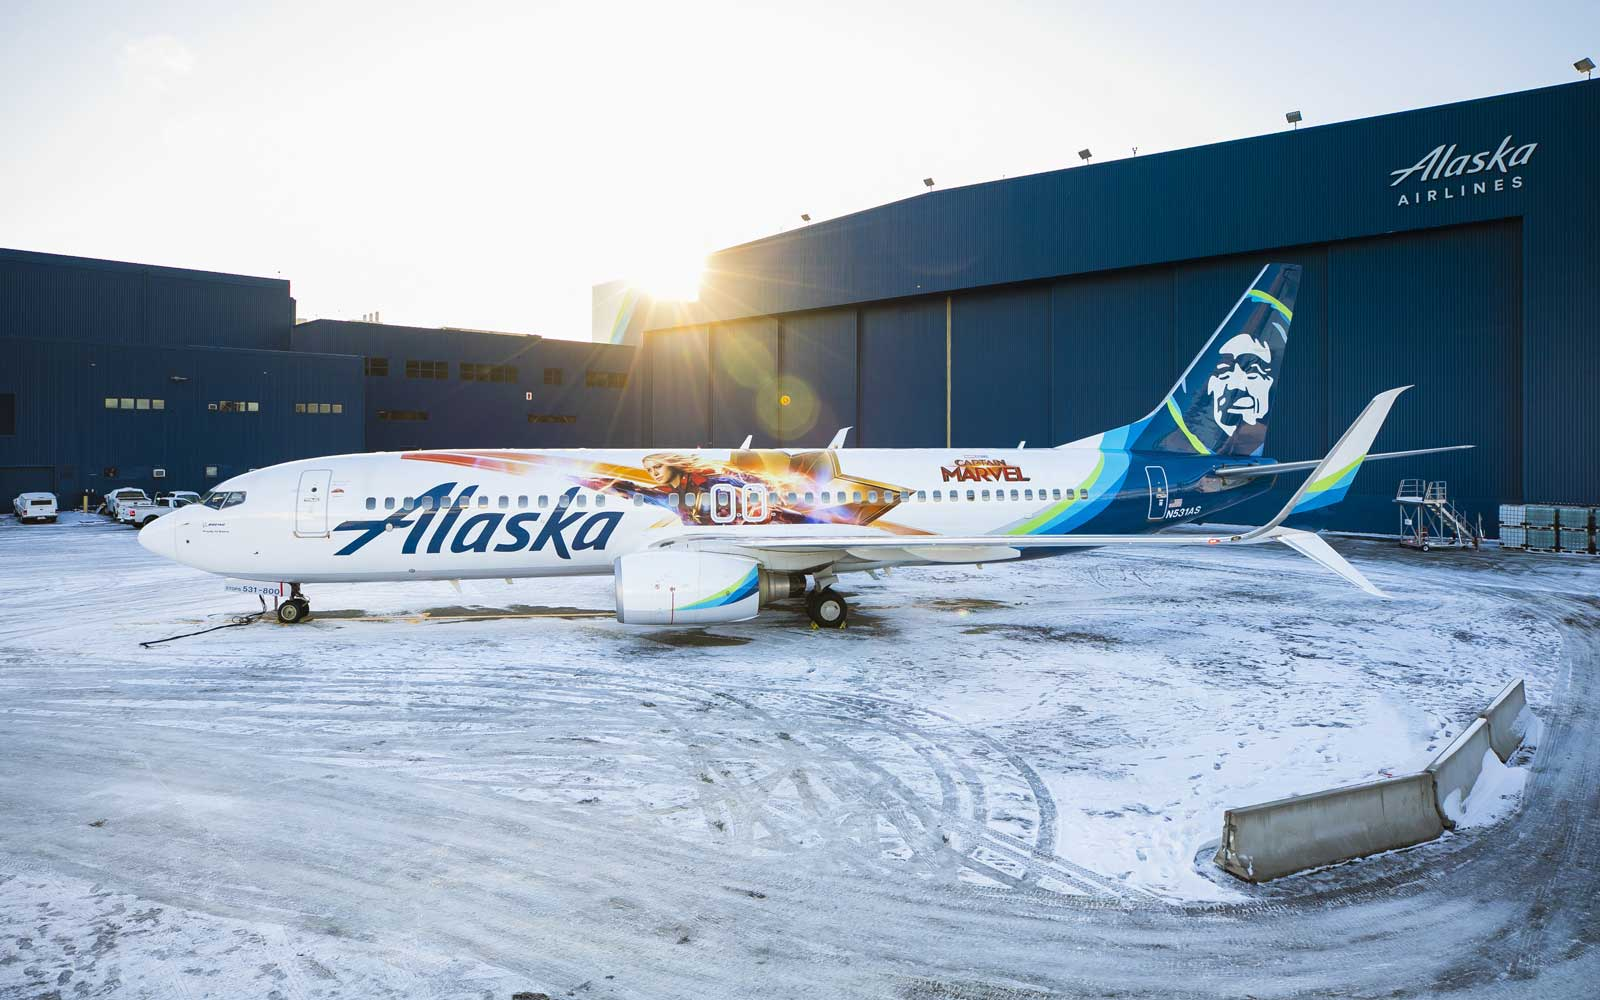 Captain Marvel wrap on Alaska Airlines plane